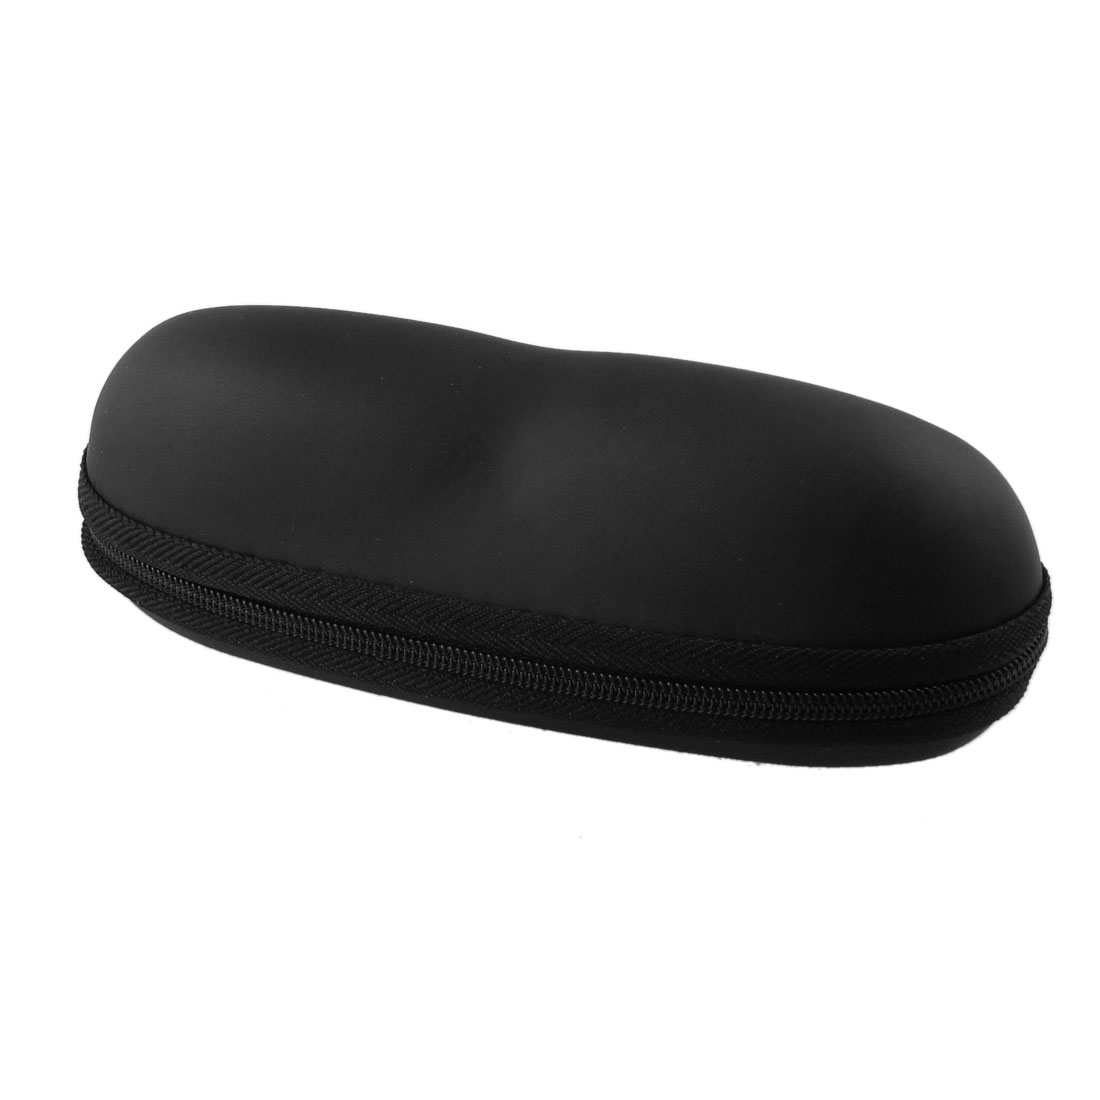 Zipper Closure Black Box Reading Glasses Sunglasses Case Holder